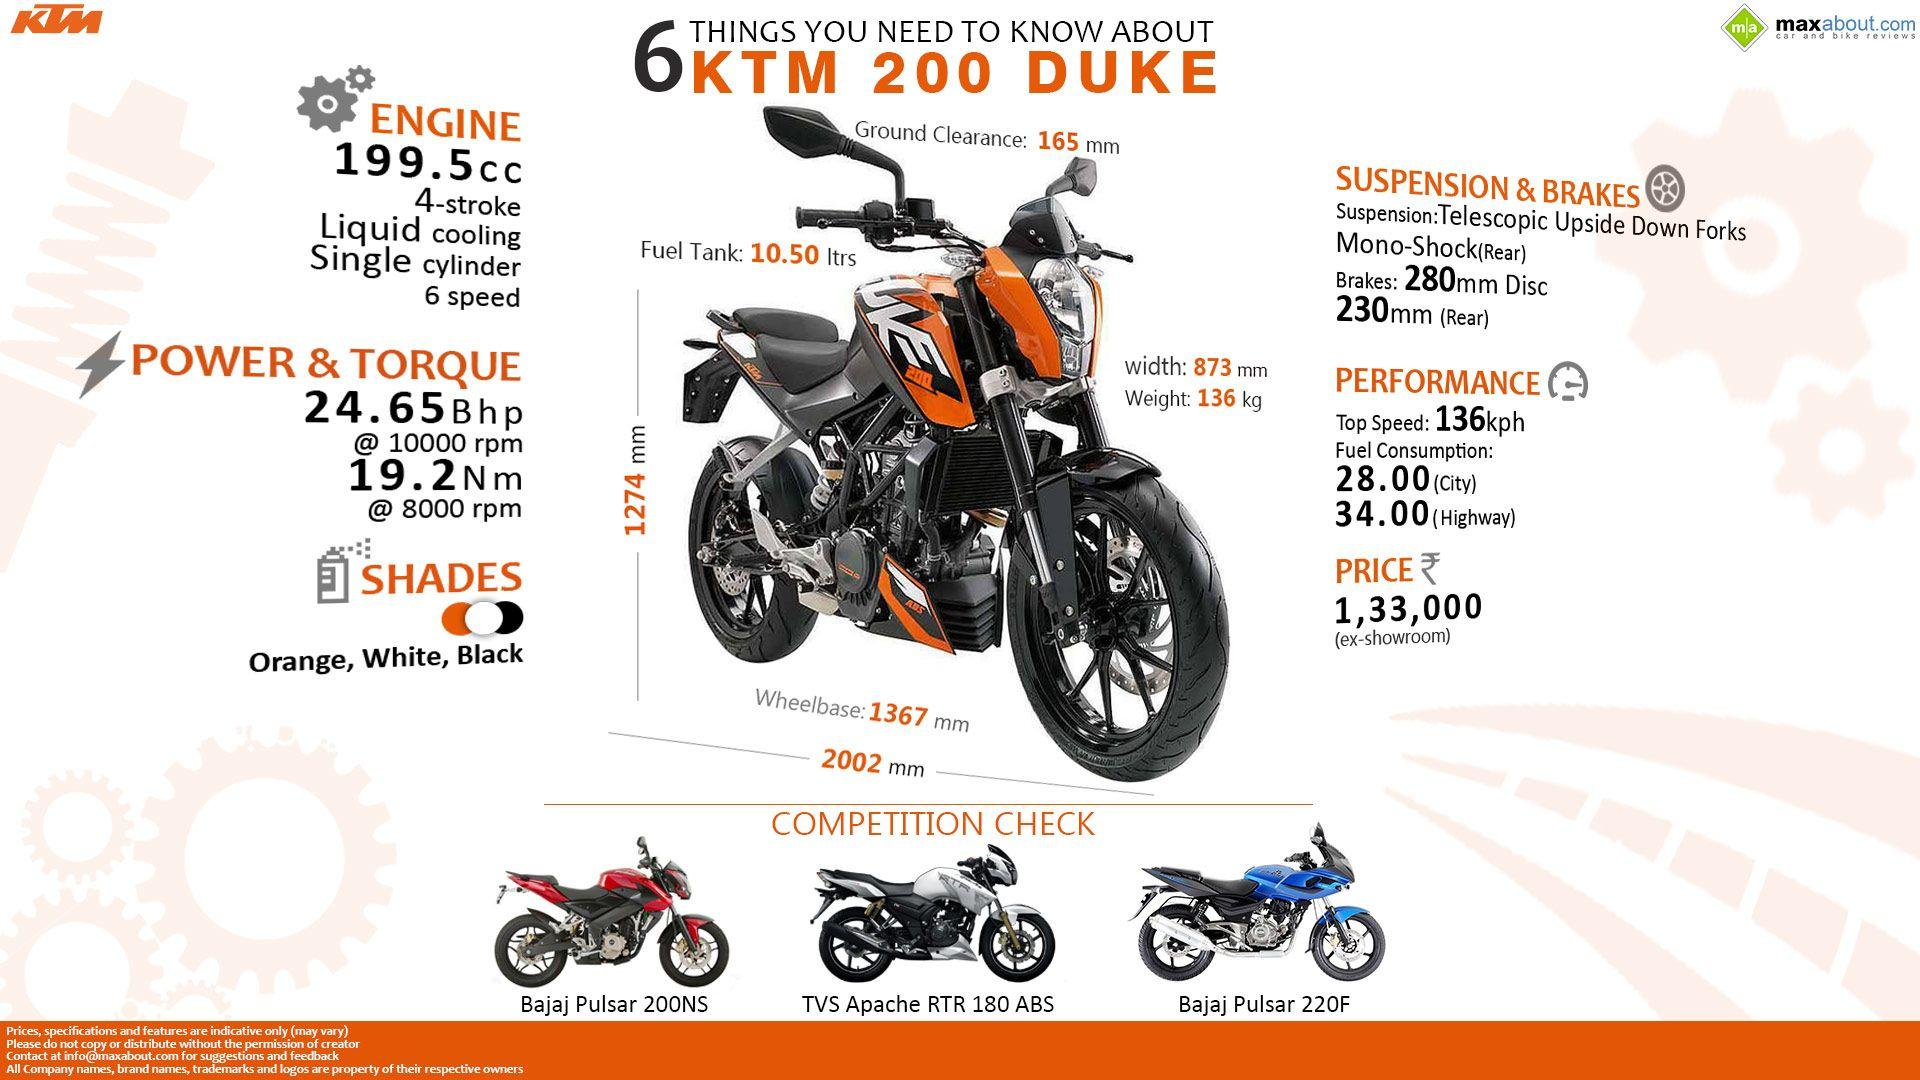 KTM 200 Duke: 6 Things You Need to Know